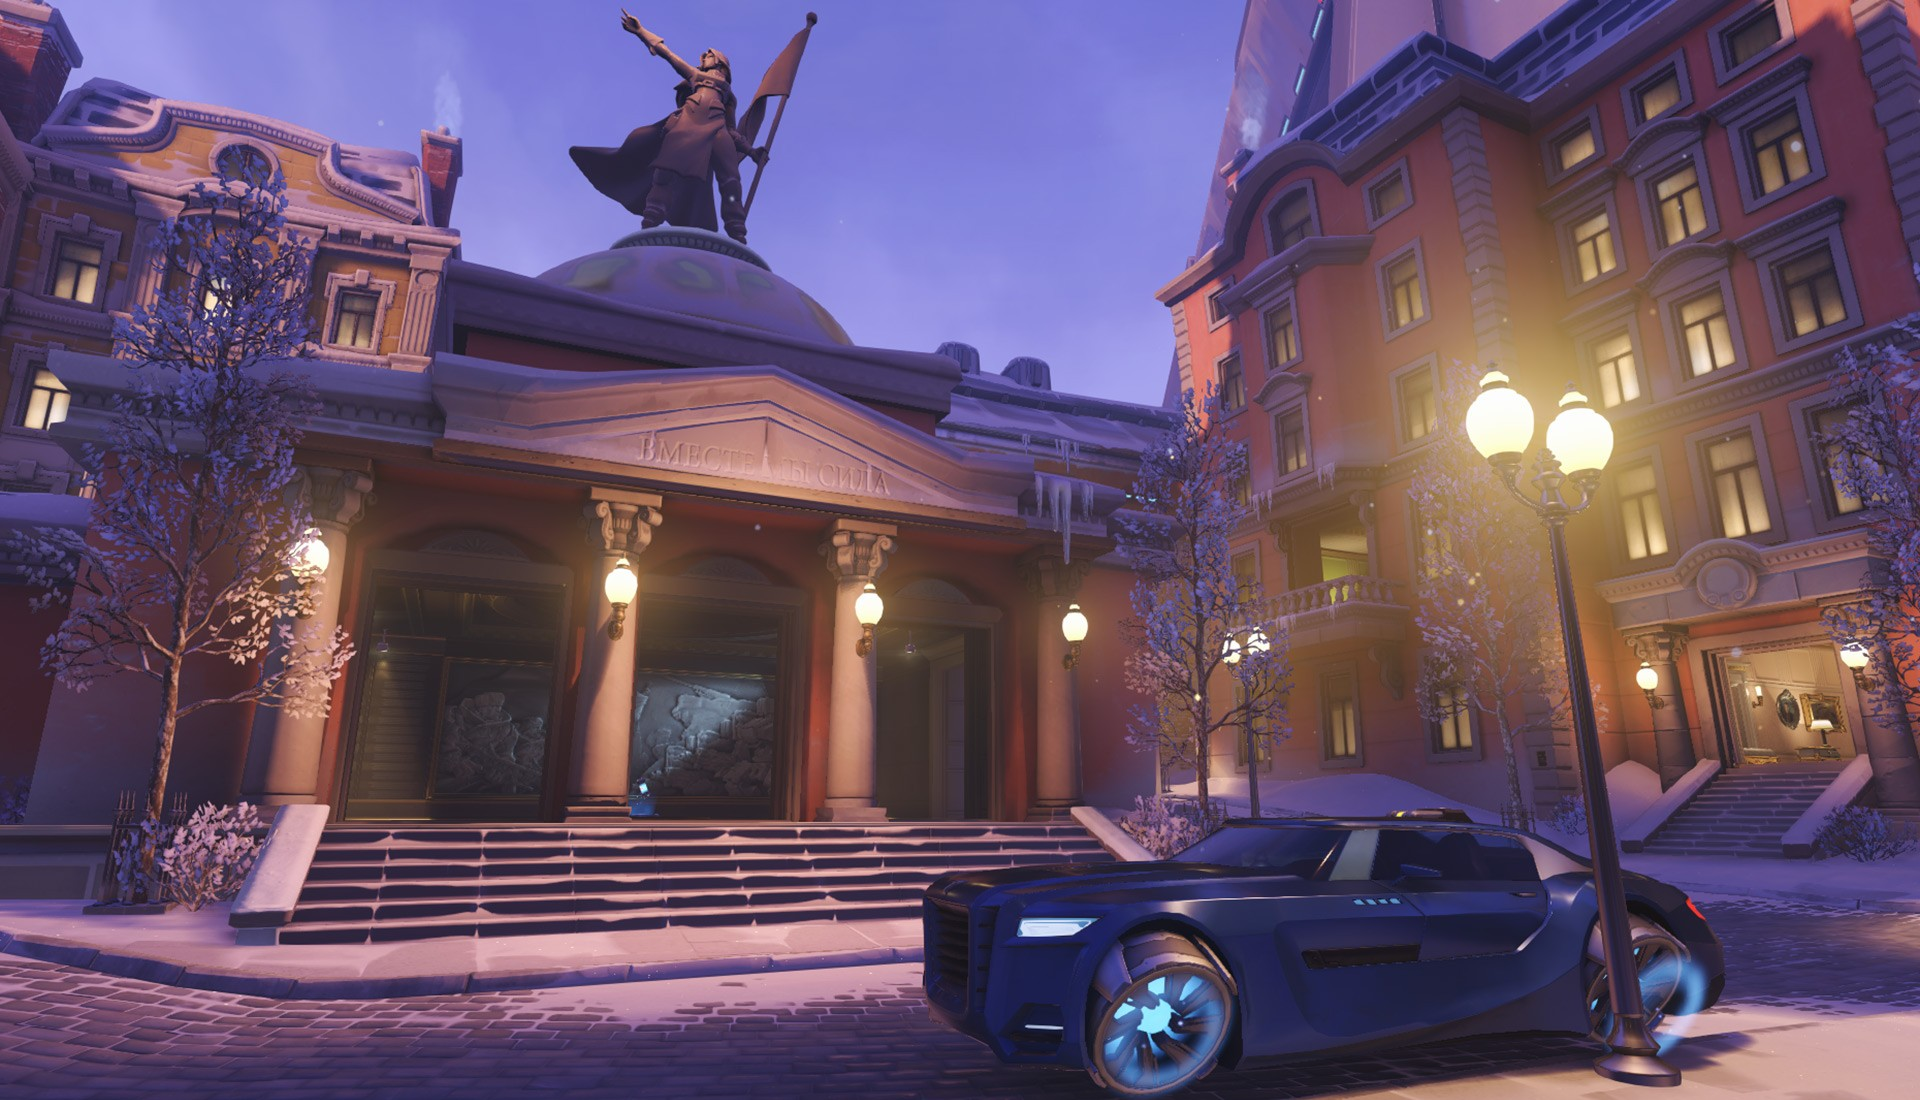 background - Overwatch competitive mode je pekelný průser